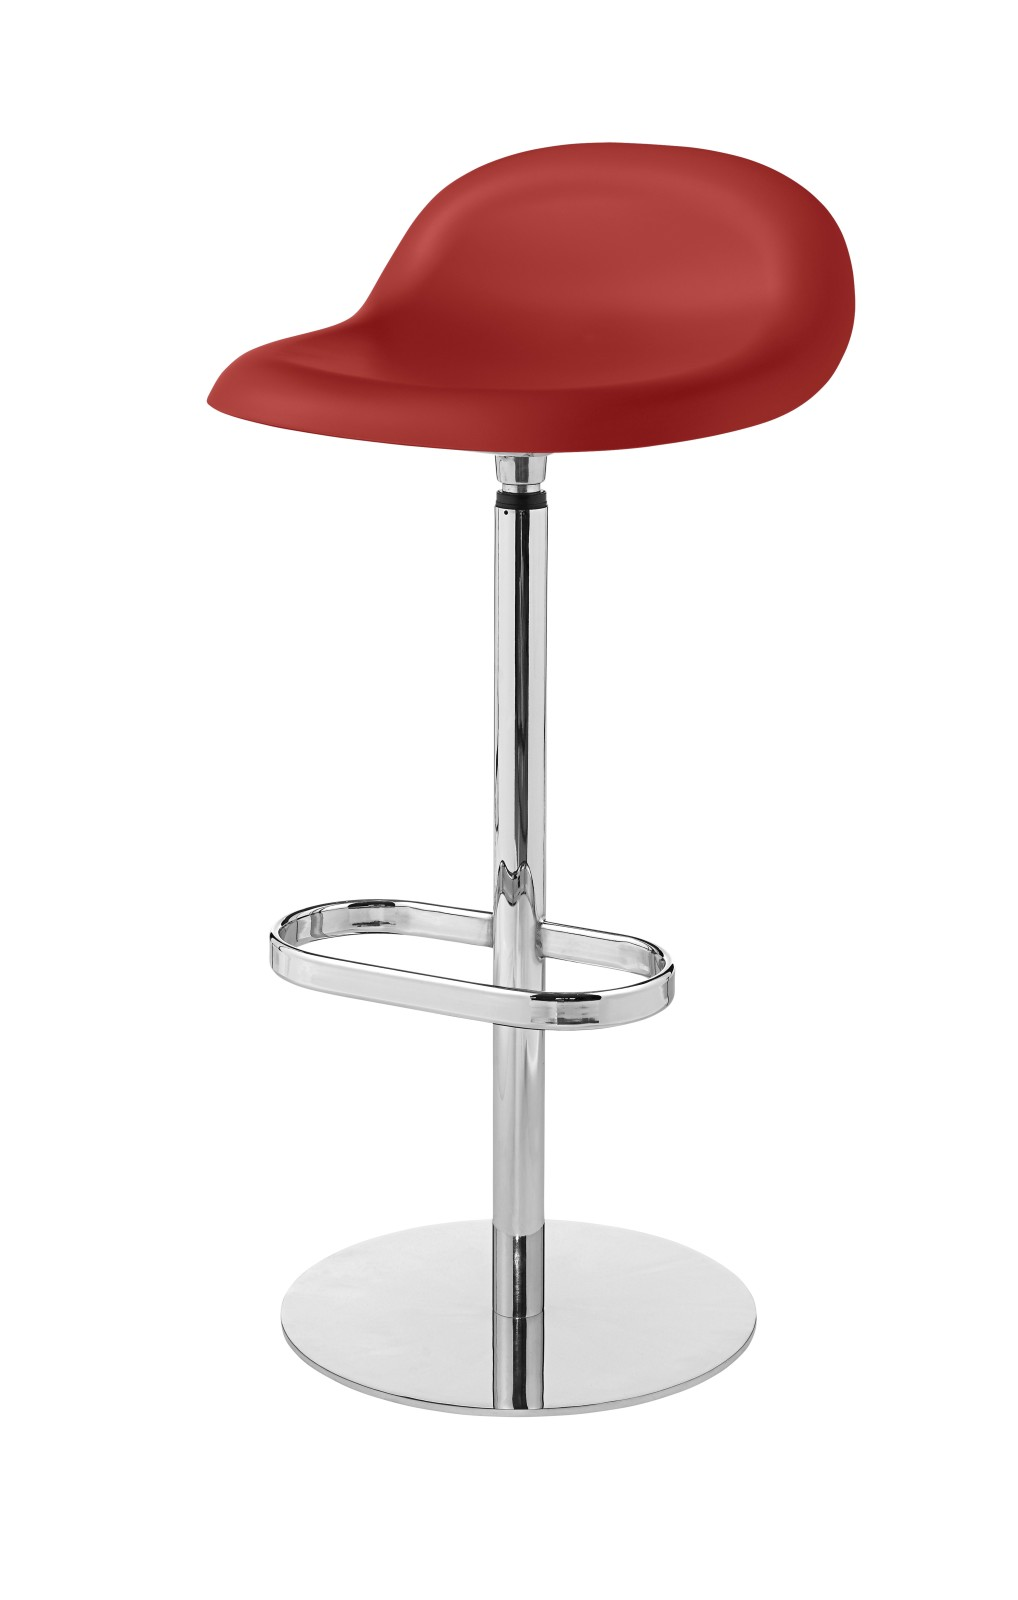 Gubi 3D Bar Stool Swivel Base - Unupholstered Gubi HiRek Shy Cherry